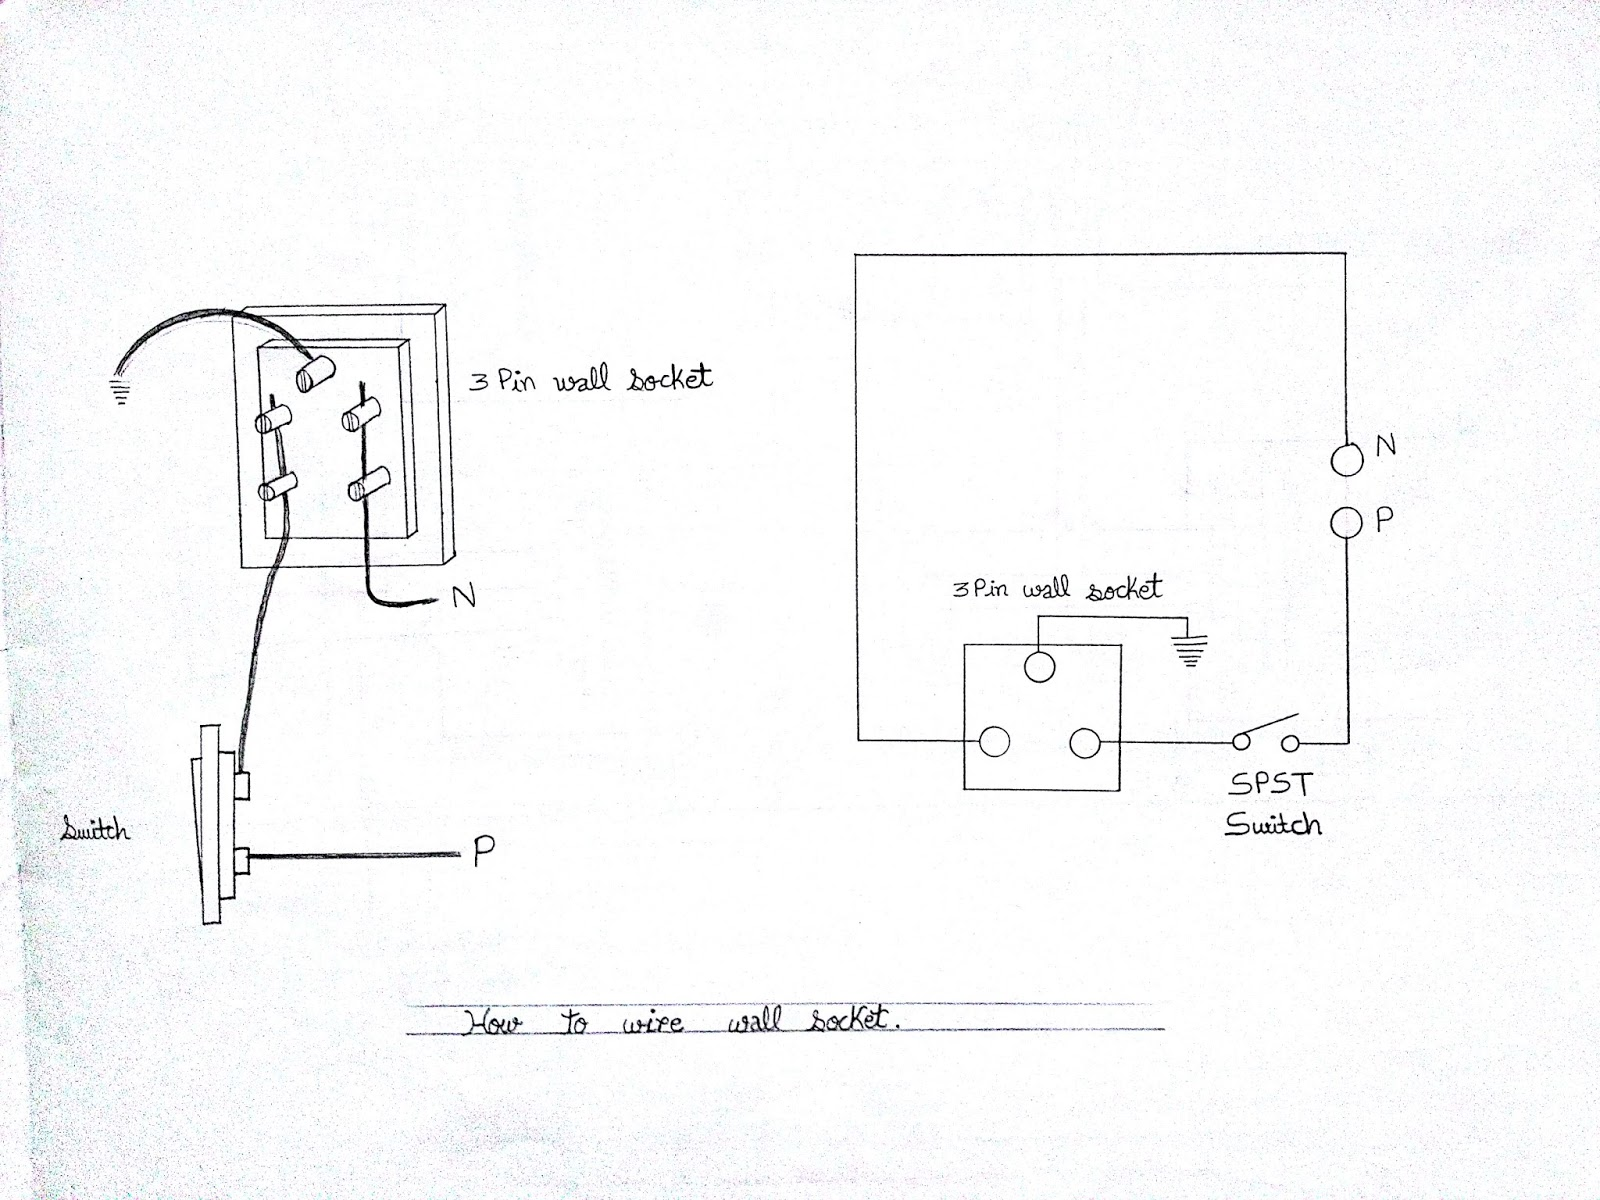 hight resolution of learn electrician electrical wiring diagrams of switches sockets 2 way switches wiring diagram of 1